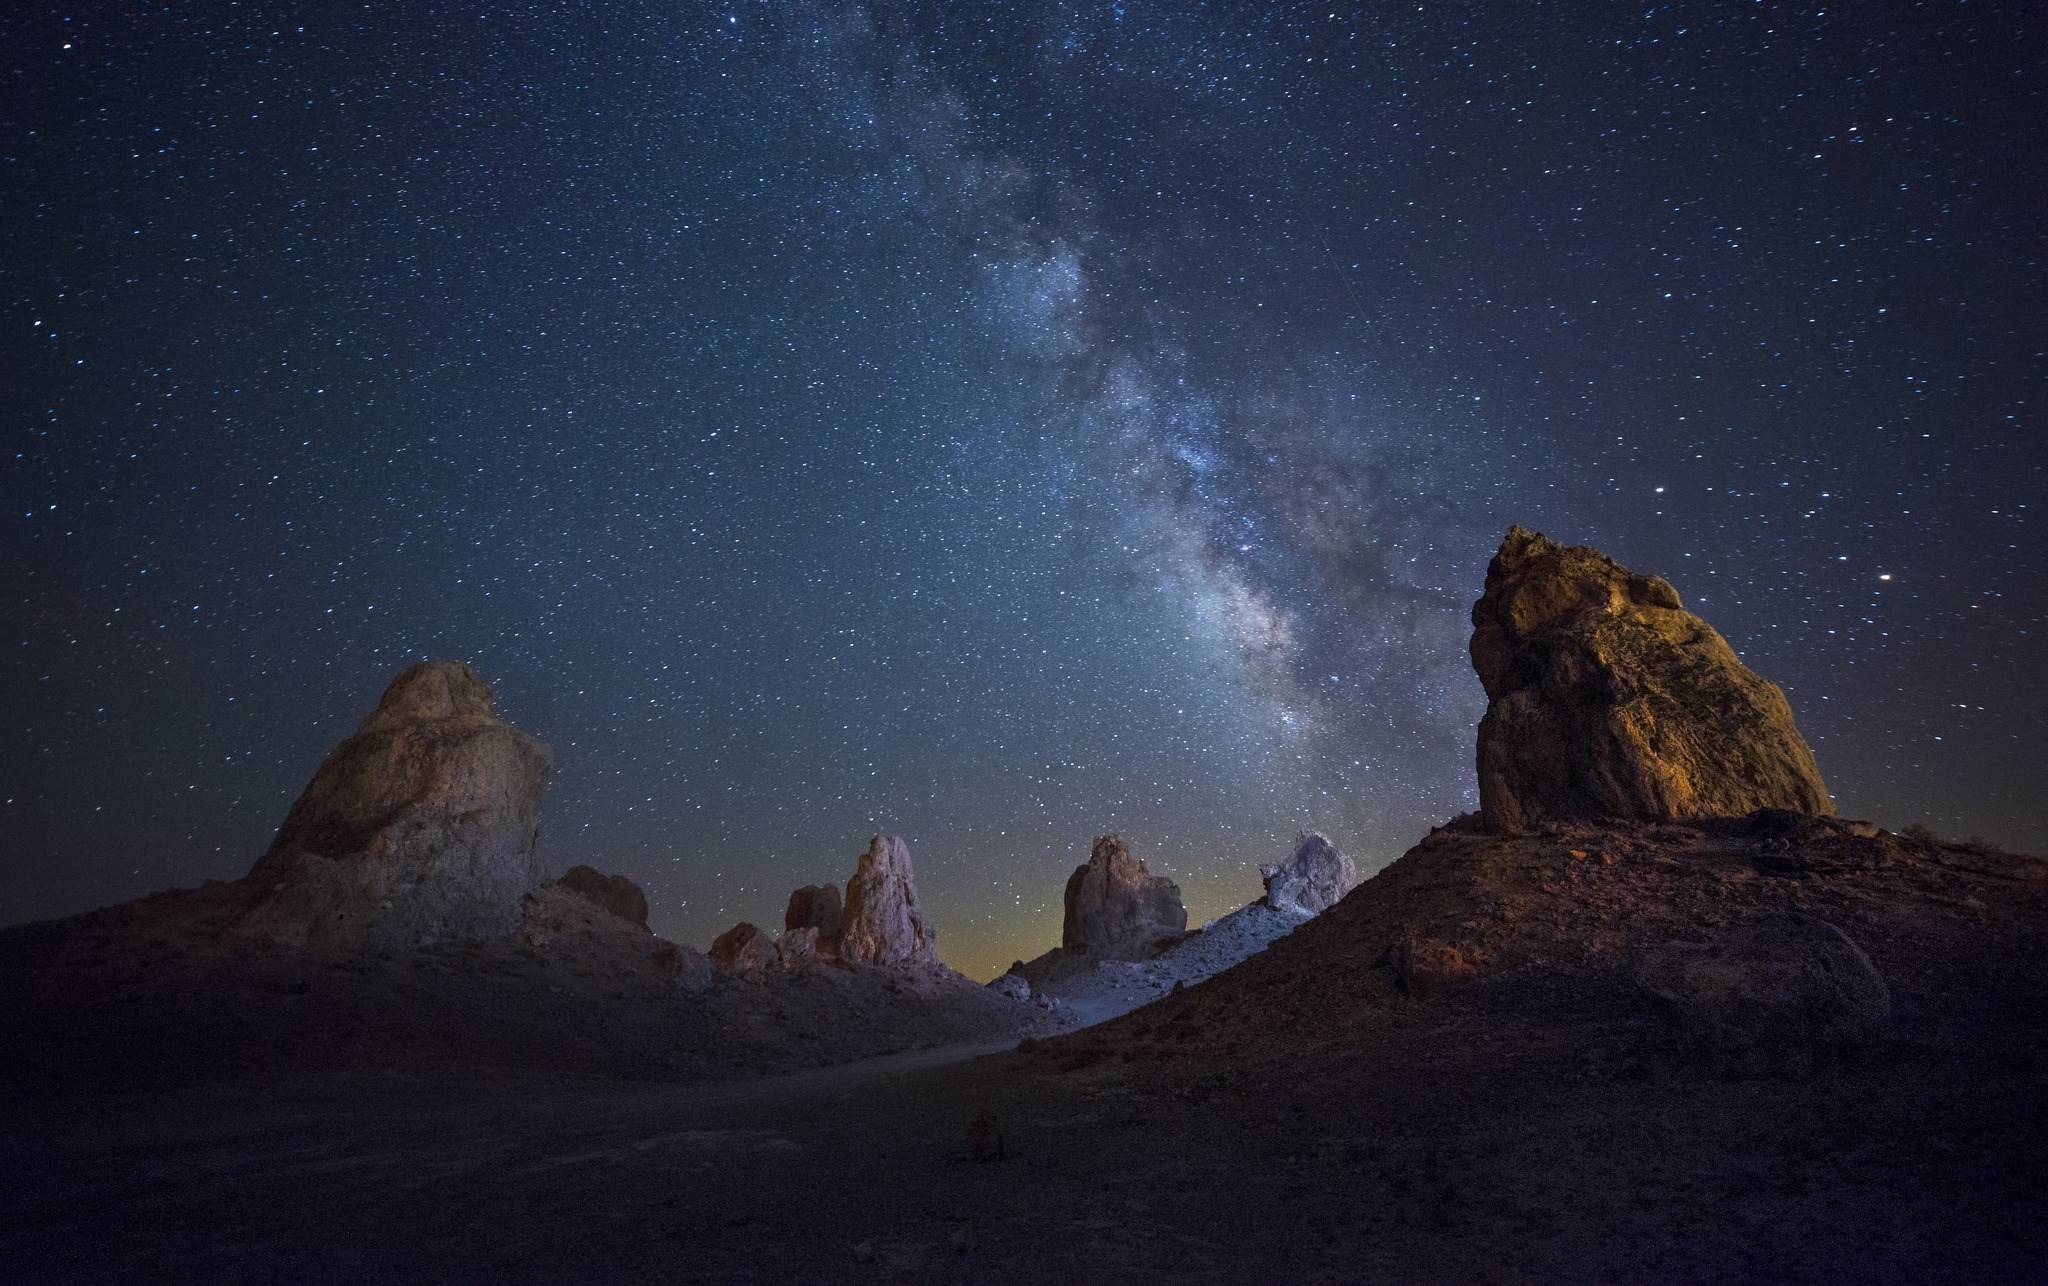 milky way wallpaper hd pack (Colby Holiday 2048×1286)